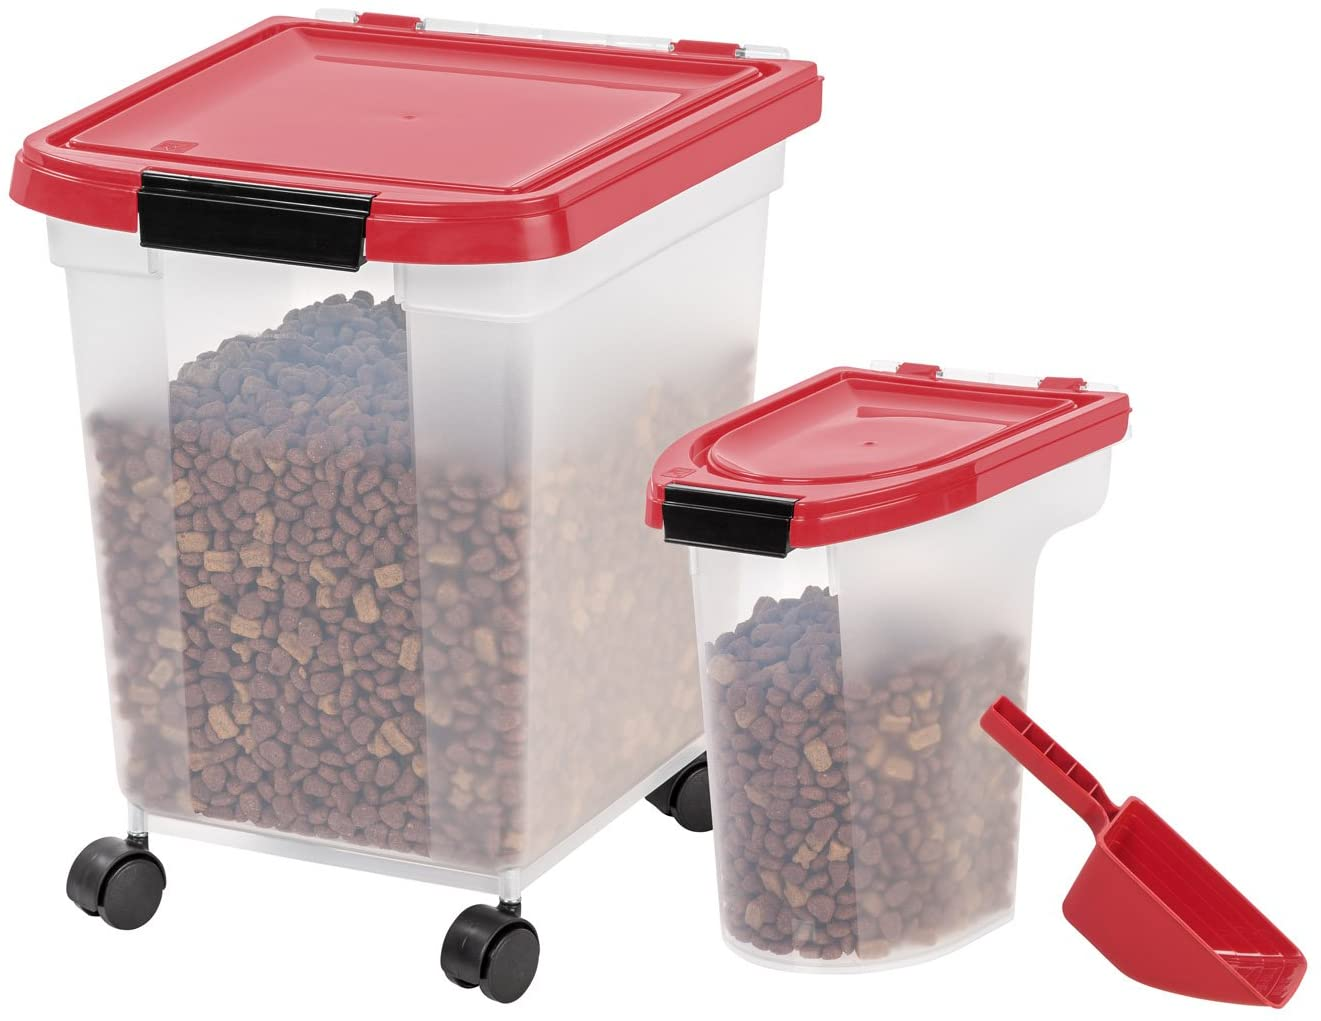 IRIS USA Airtight Food Storage Combo with Scoops MP-350/MP-220/SCP-2